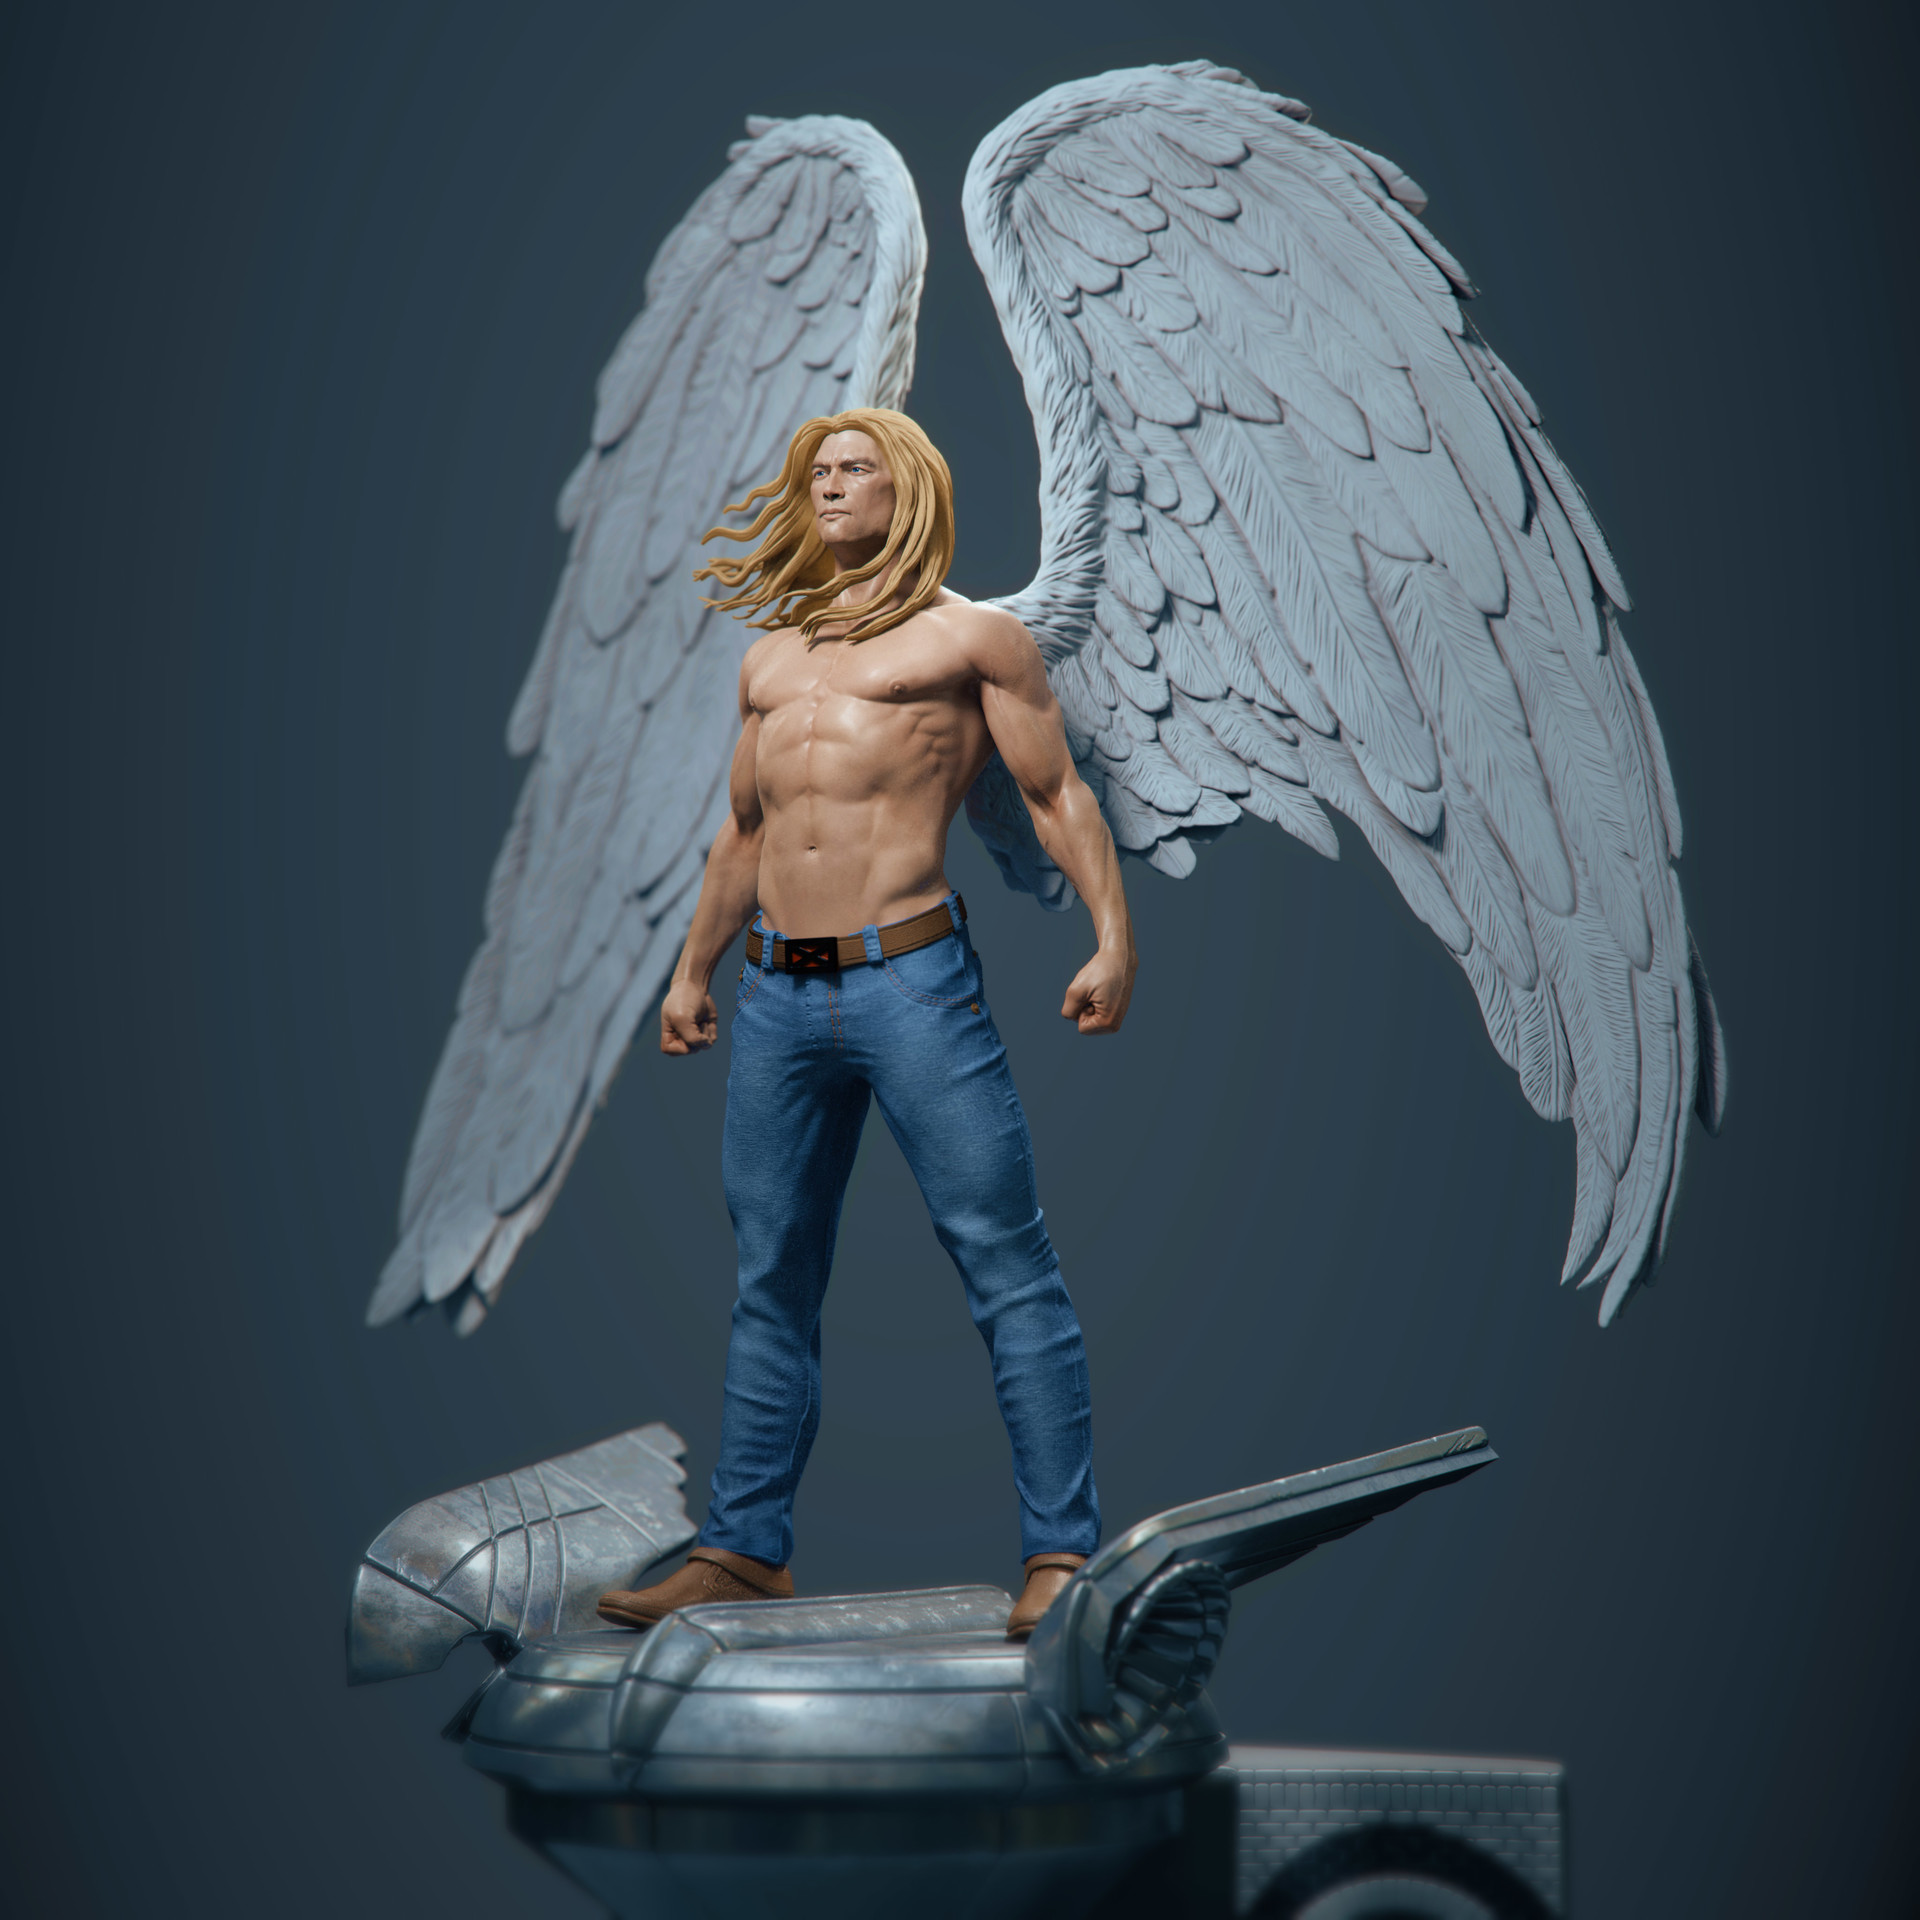 Franco carlesimo angel renders 00002